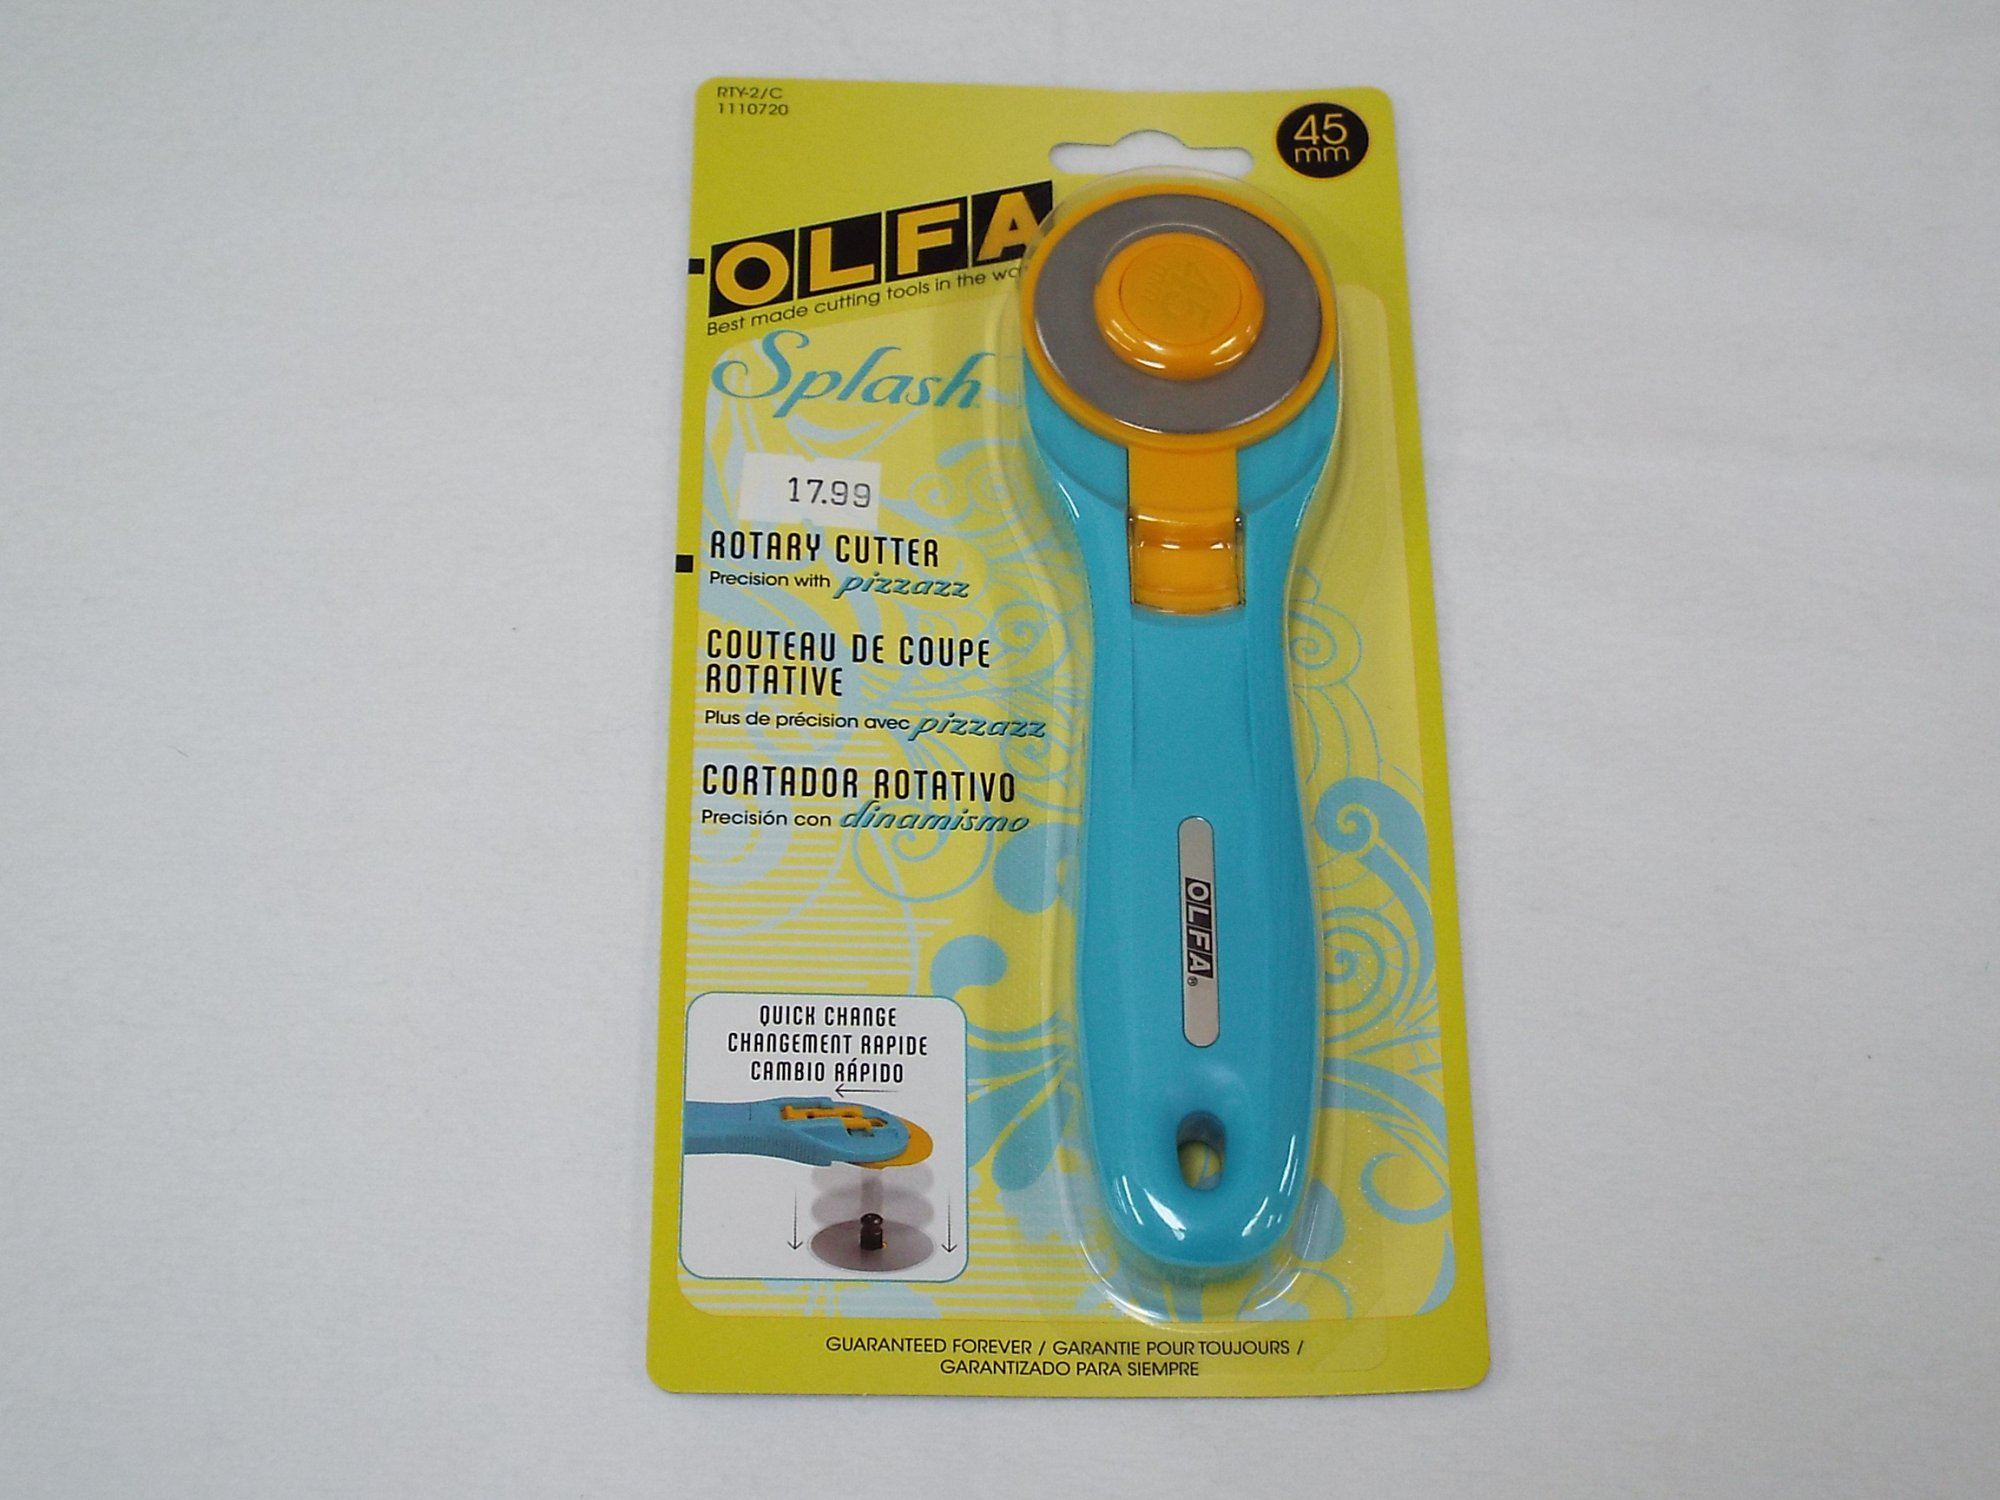 45mm Splash Rotary Cutter